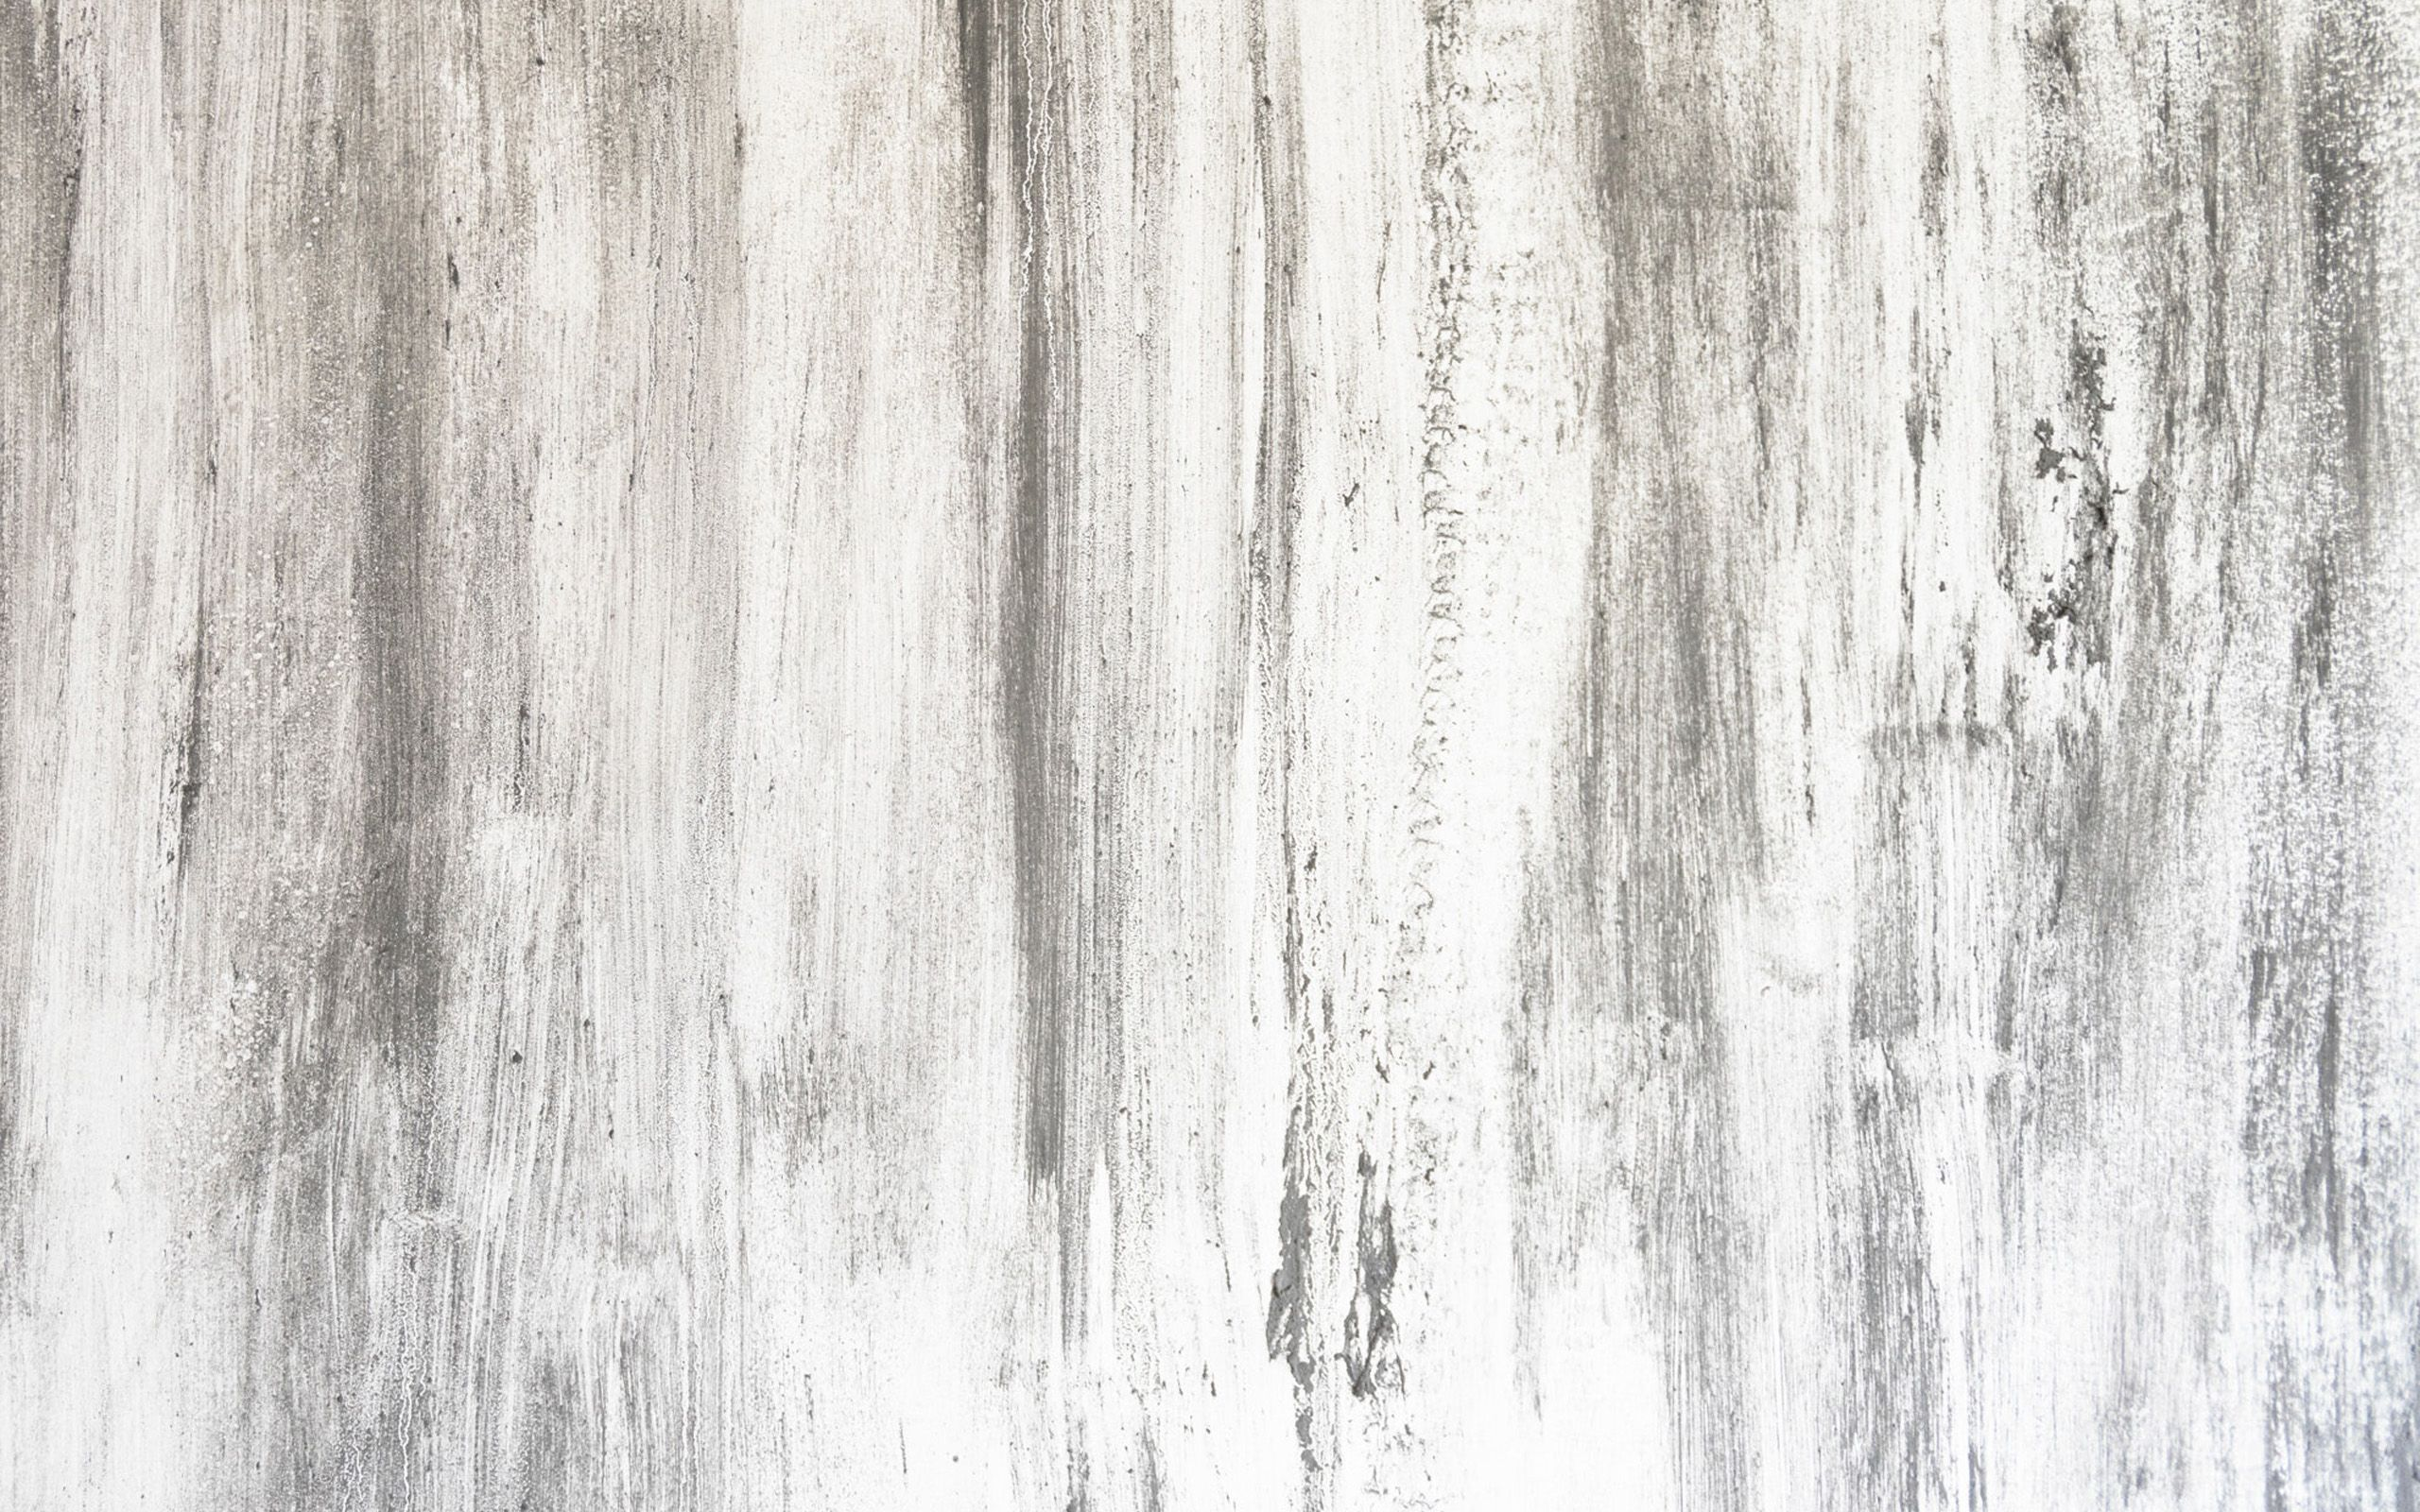 2560x1600 Download wallpapers white grunge background, white old wall ...